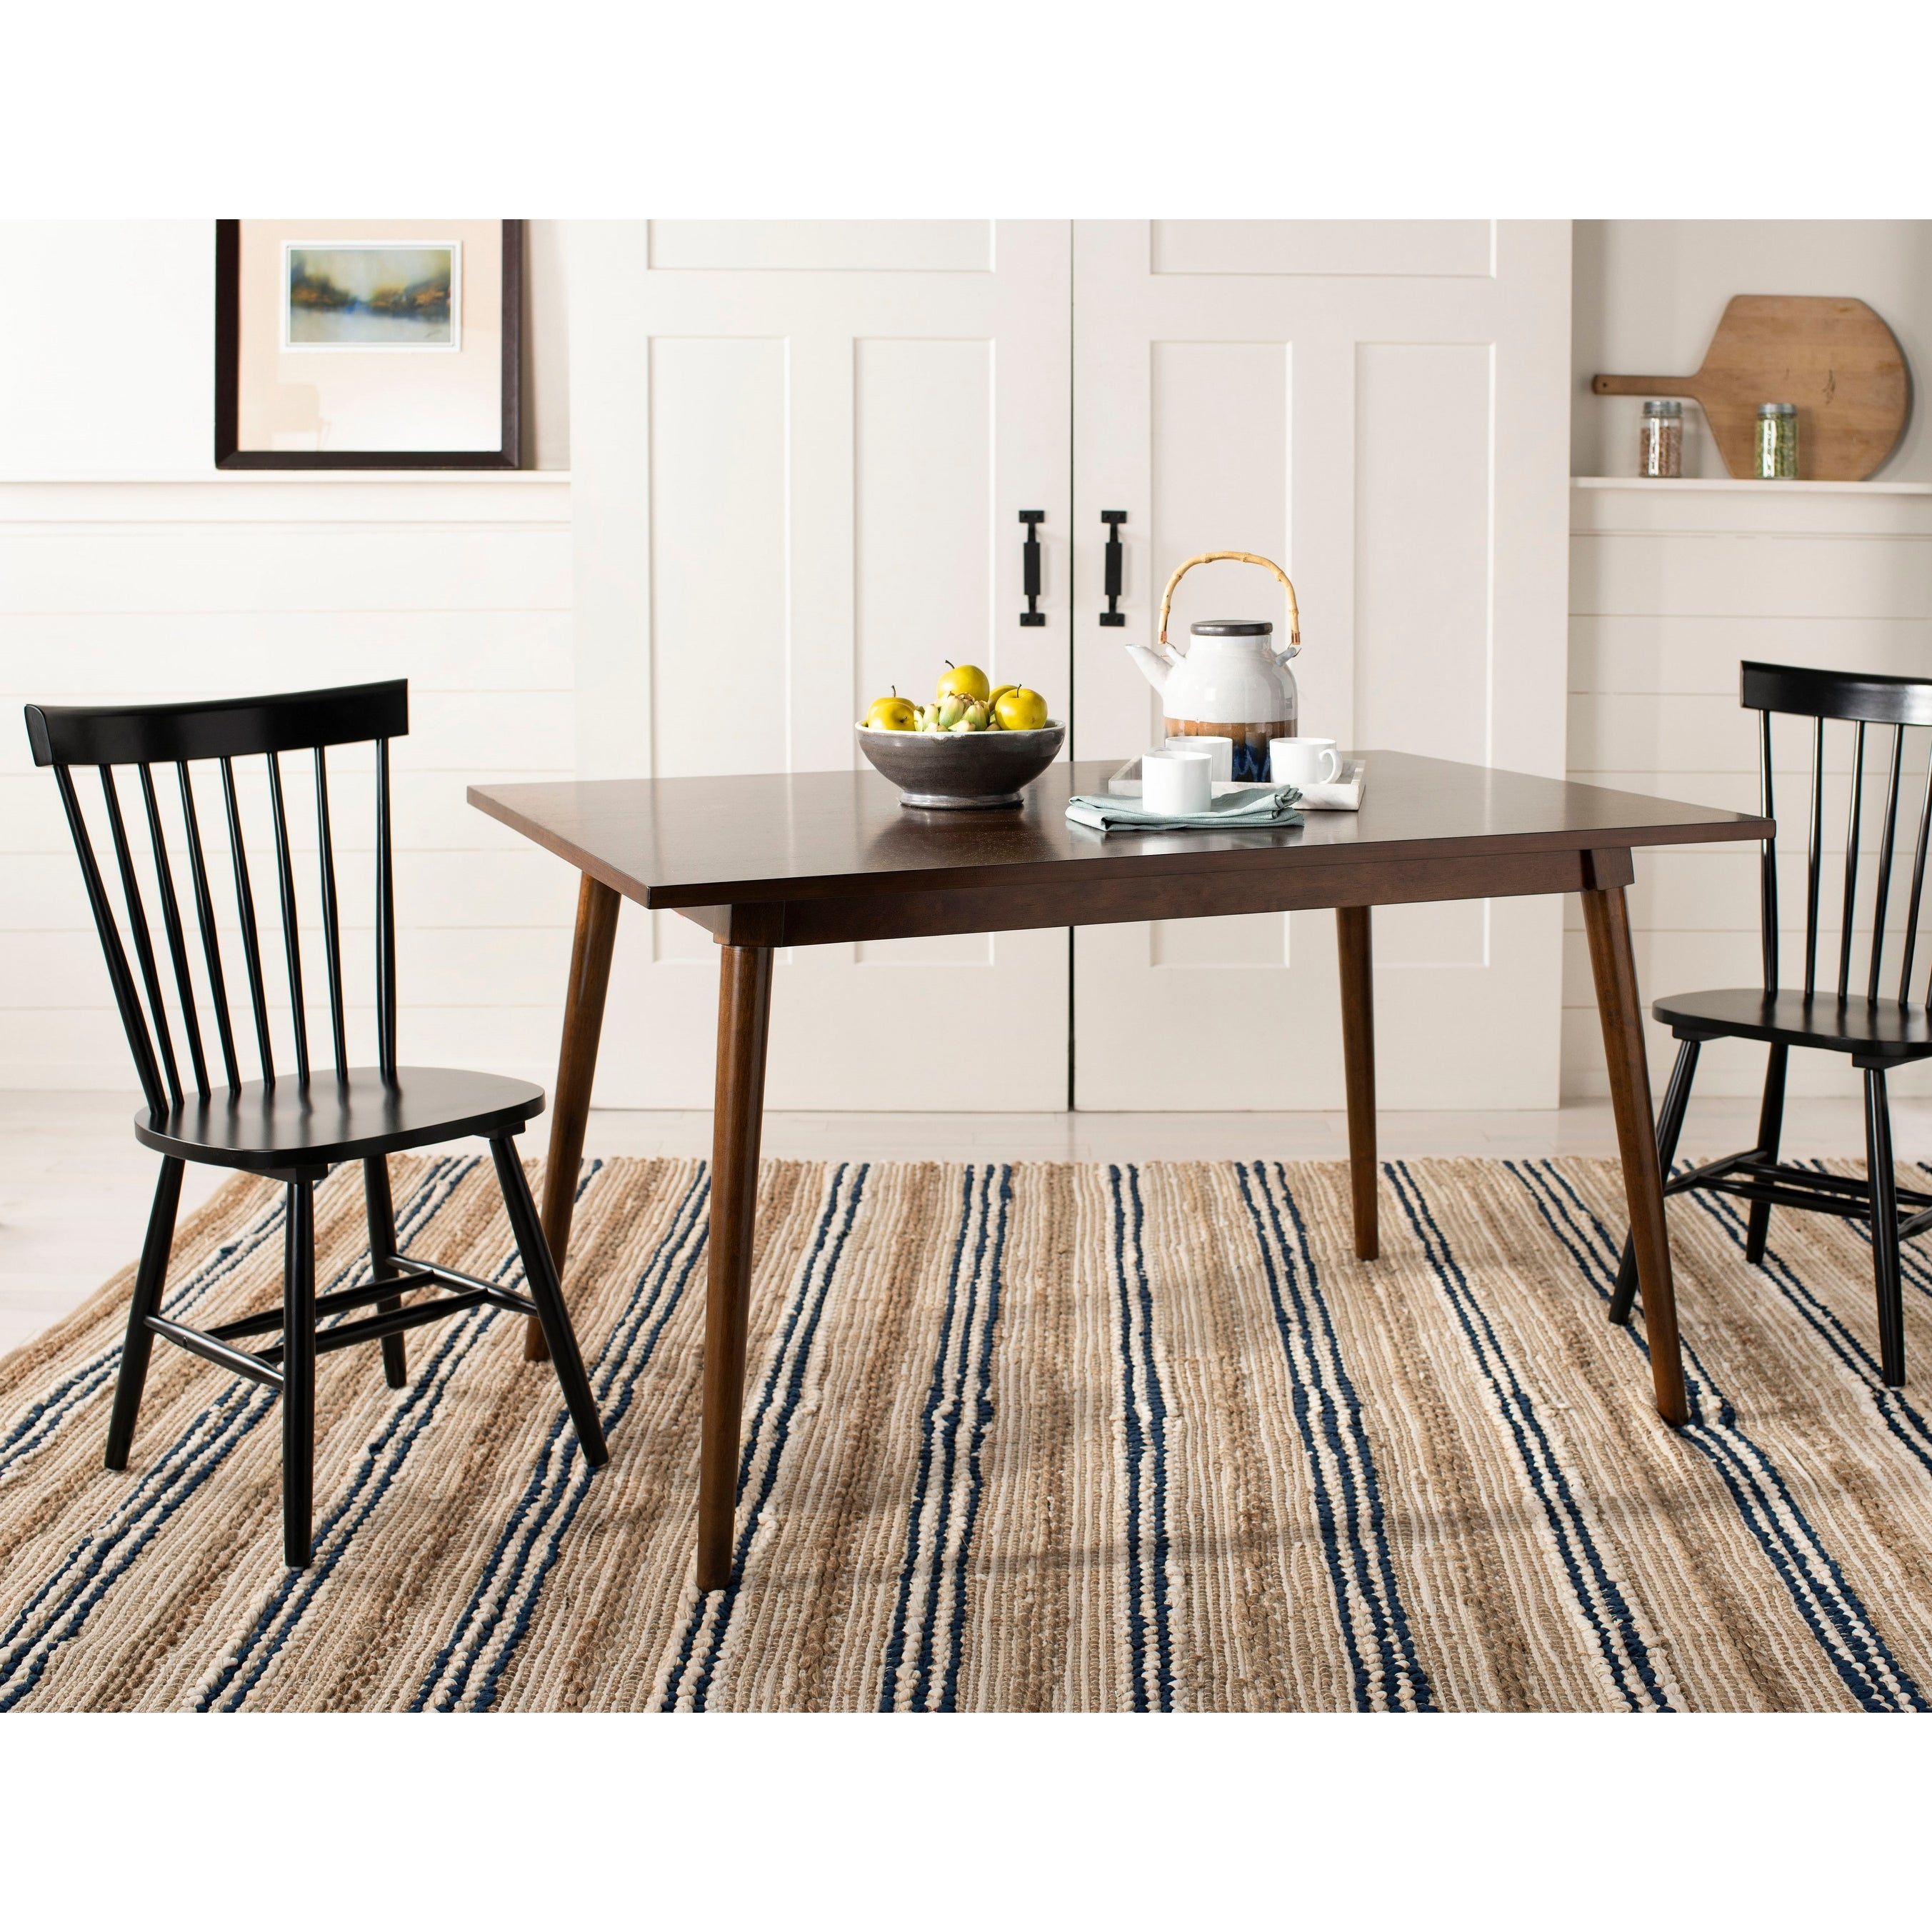 Shop Safavieh Country Classic Dining Country Lifestyle Spindle Back Black Dining Chairs Set Of 2 20 5 X 21 X 36 On Sale Overstock 6423297